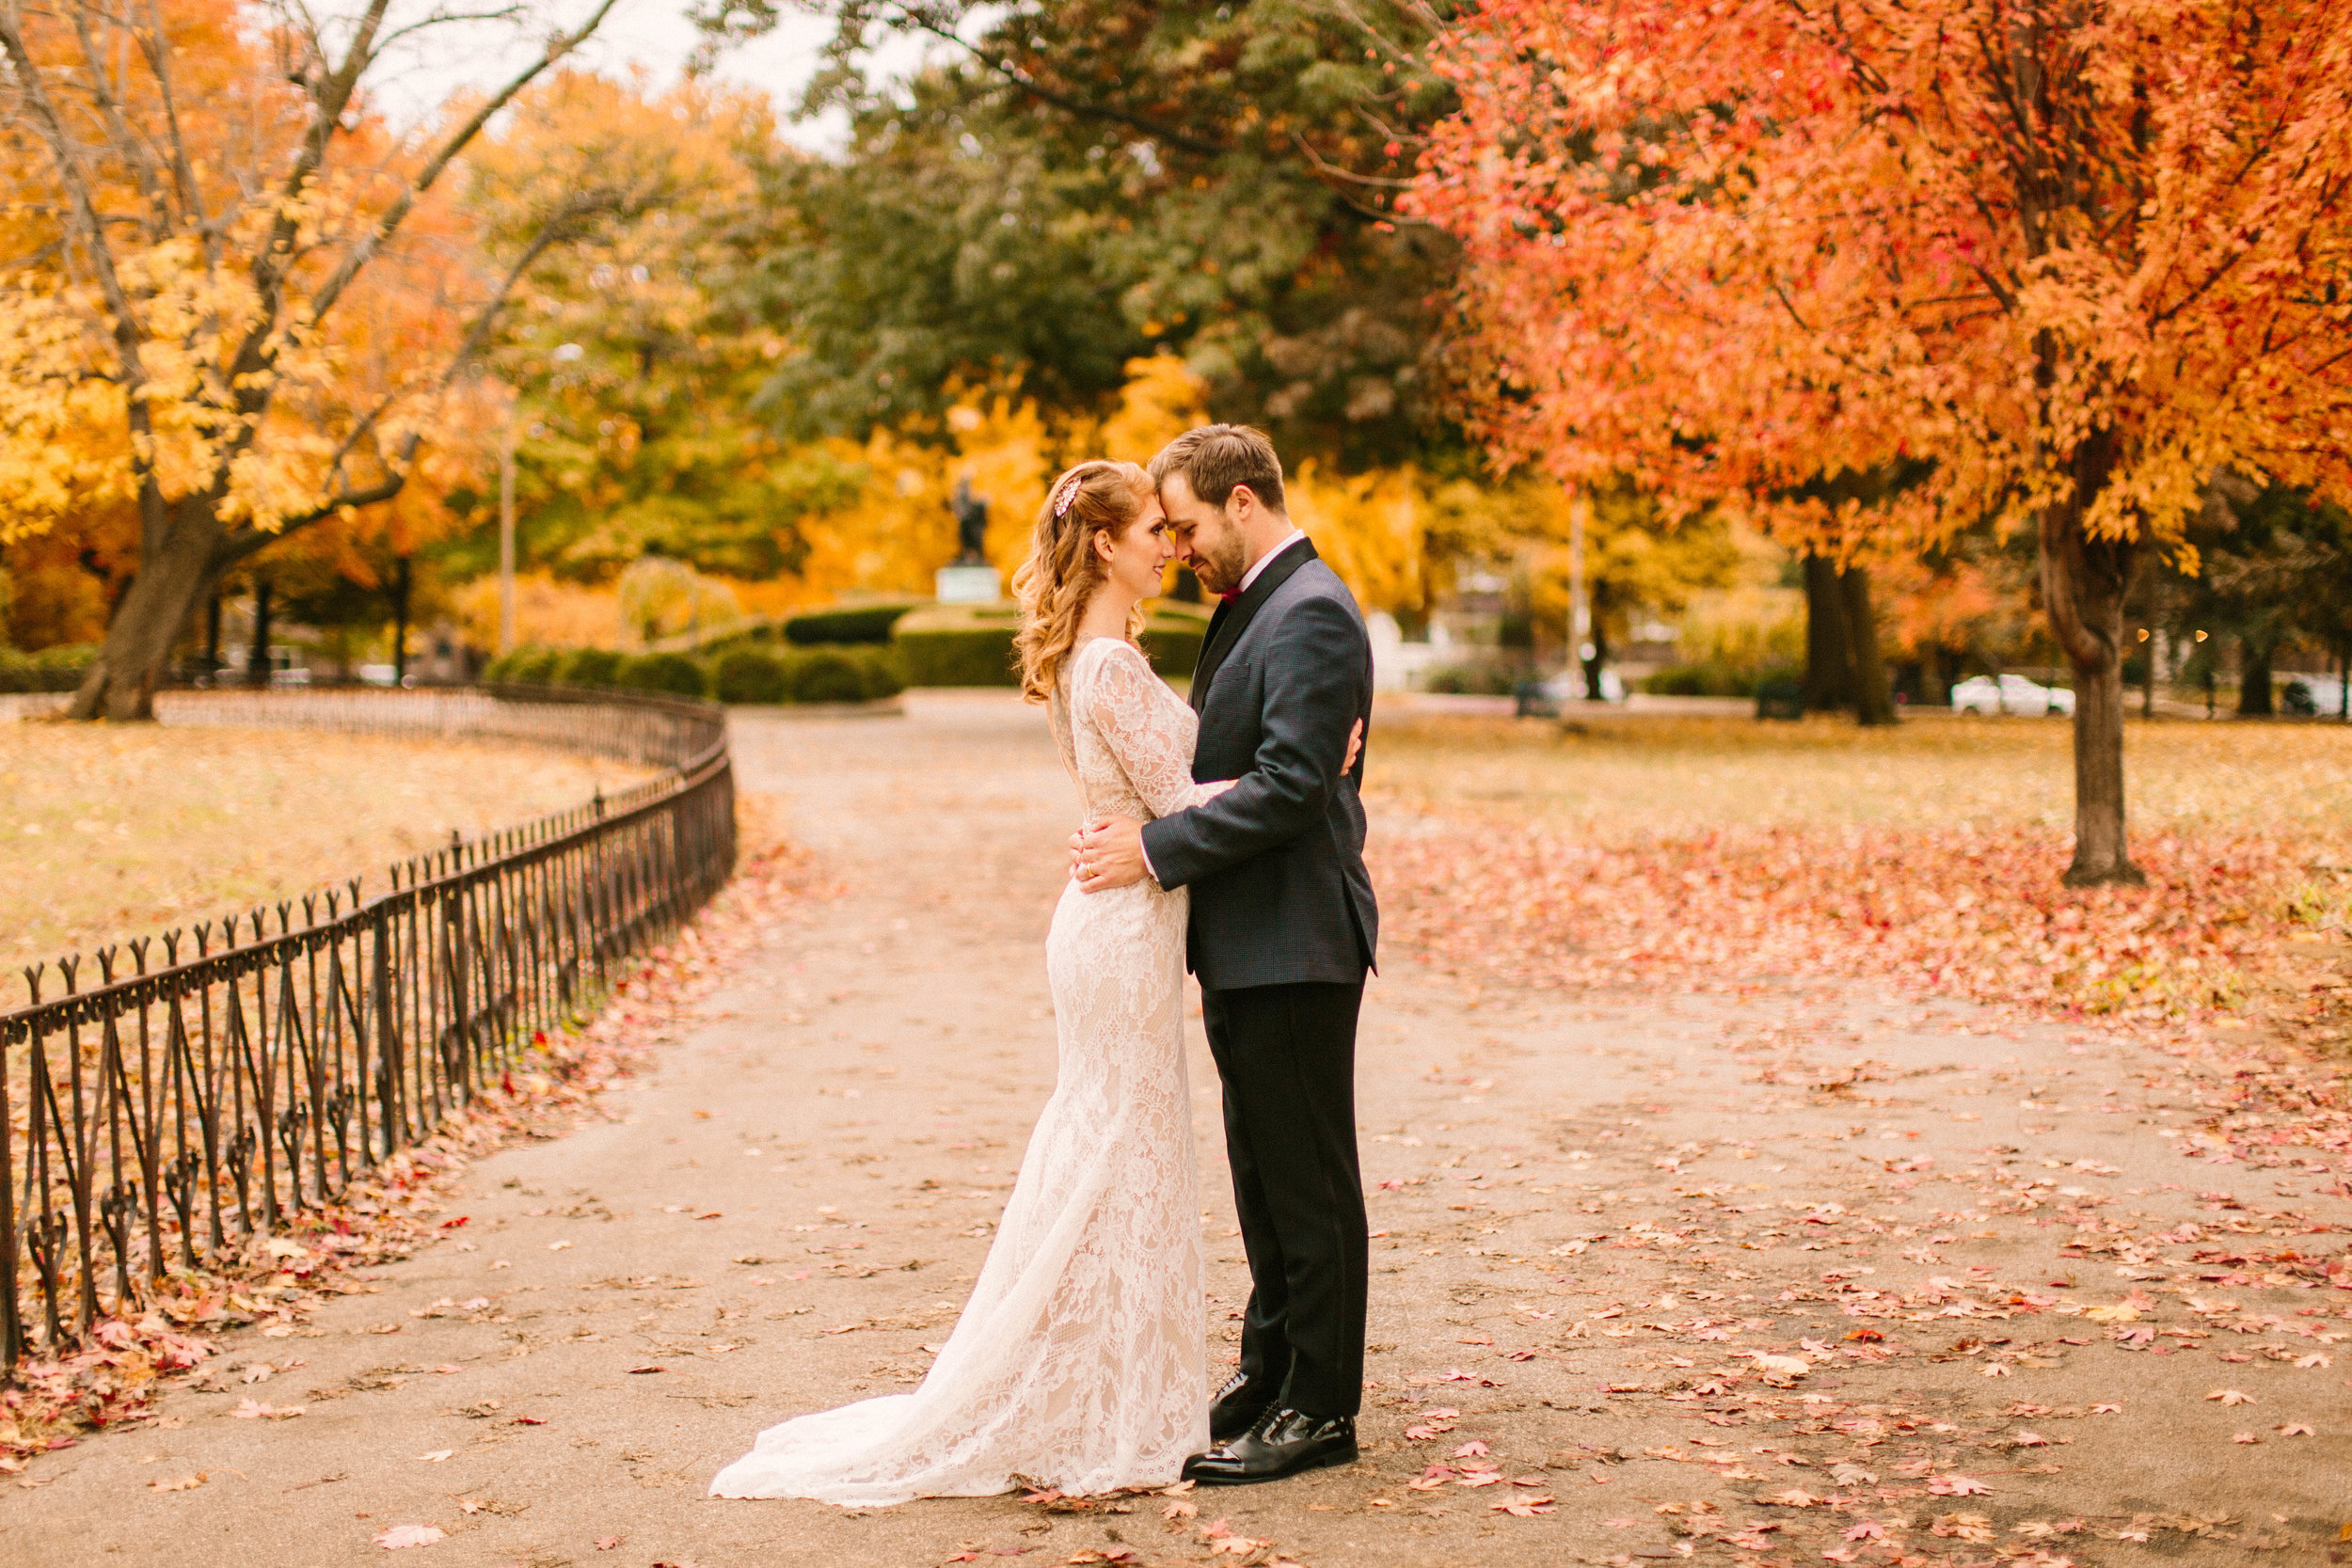 Veronica Young Photography, St. Louis Wedding photography, fall weddings